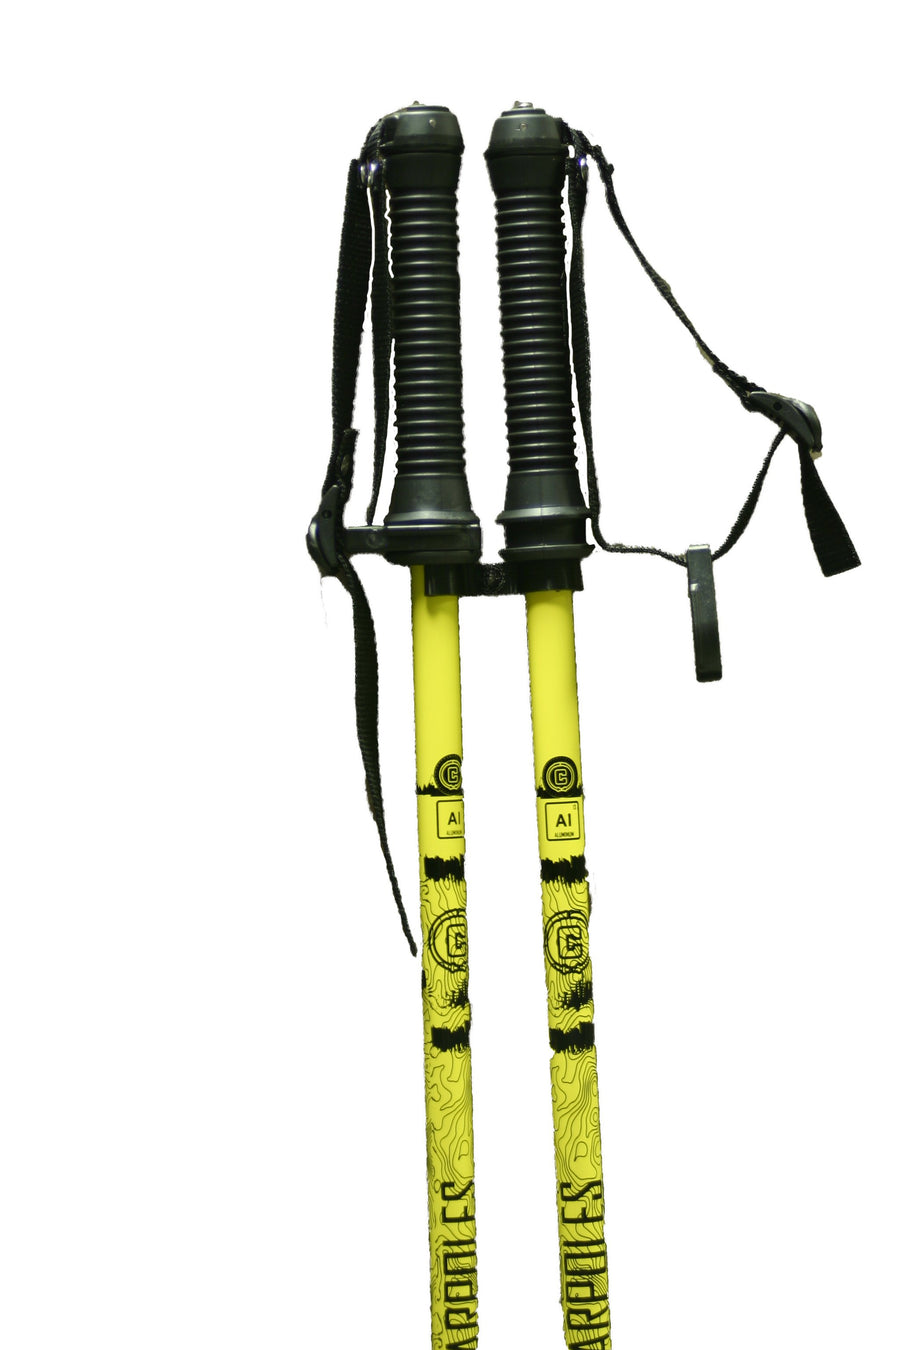 TRAJECTORY Aluminum Ski Pole - Yellow